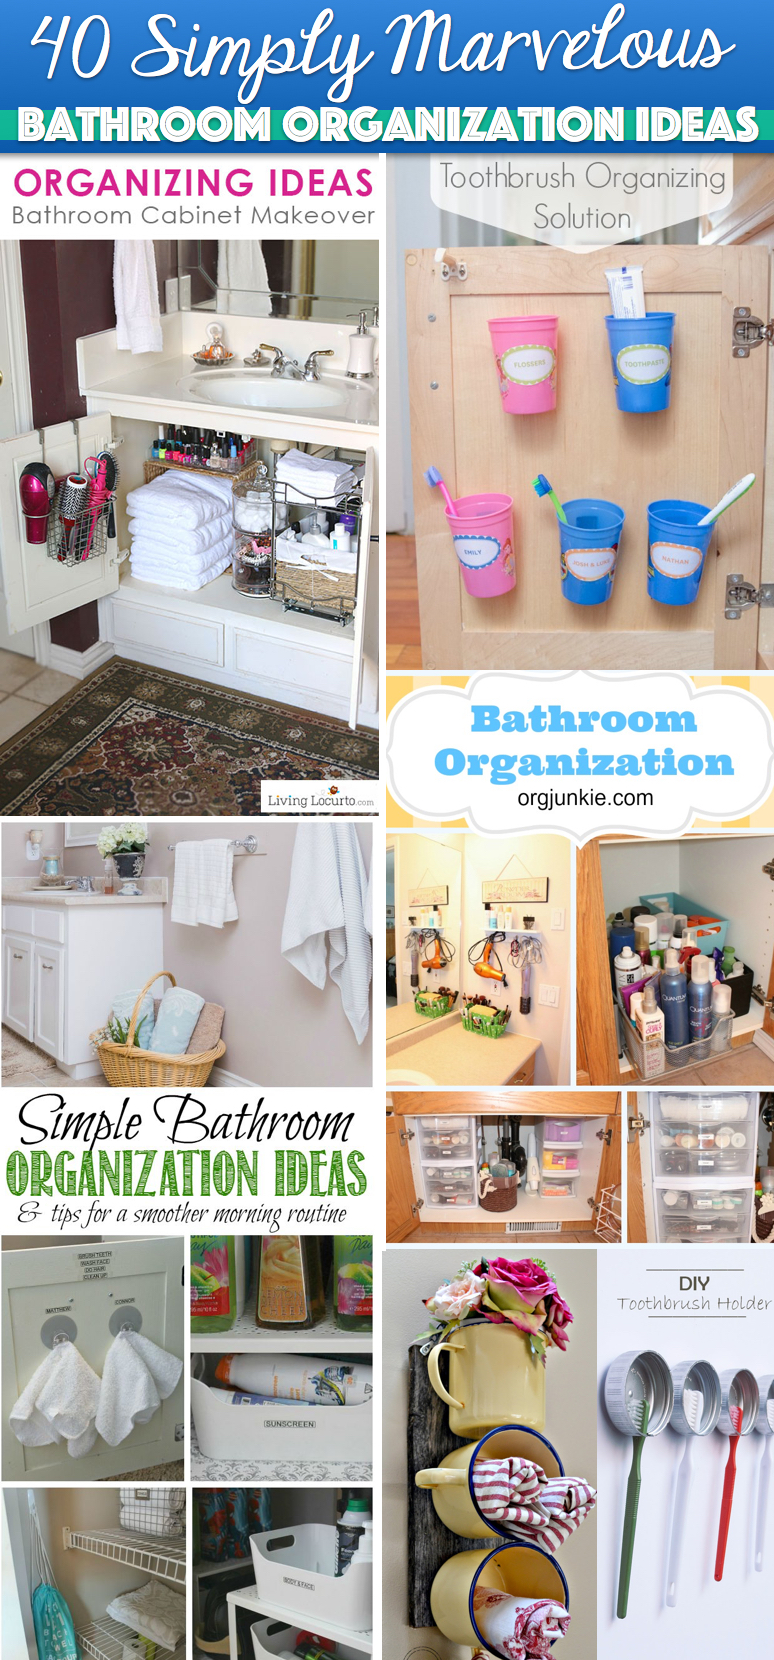 40 Simply Marvelous Bathroom Organization Ideas To Get Rid of All That Clutter!